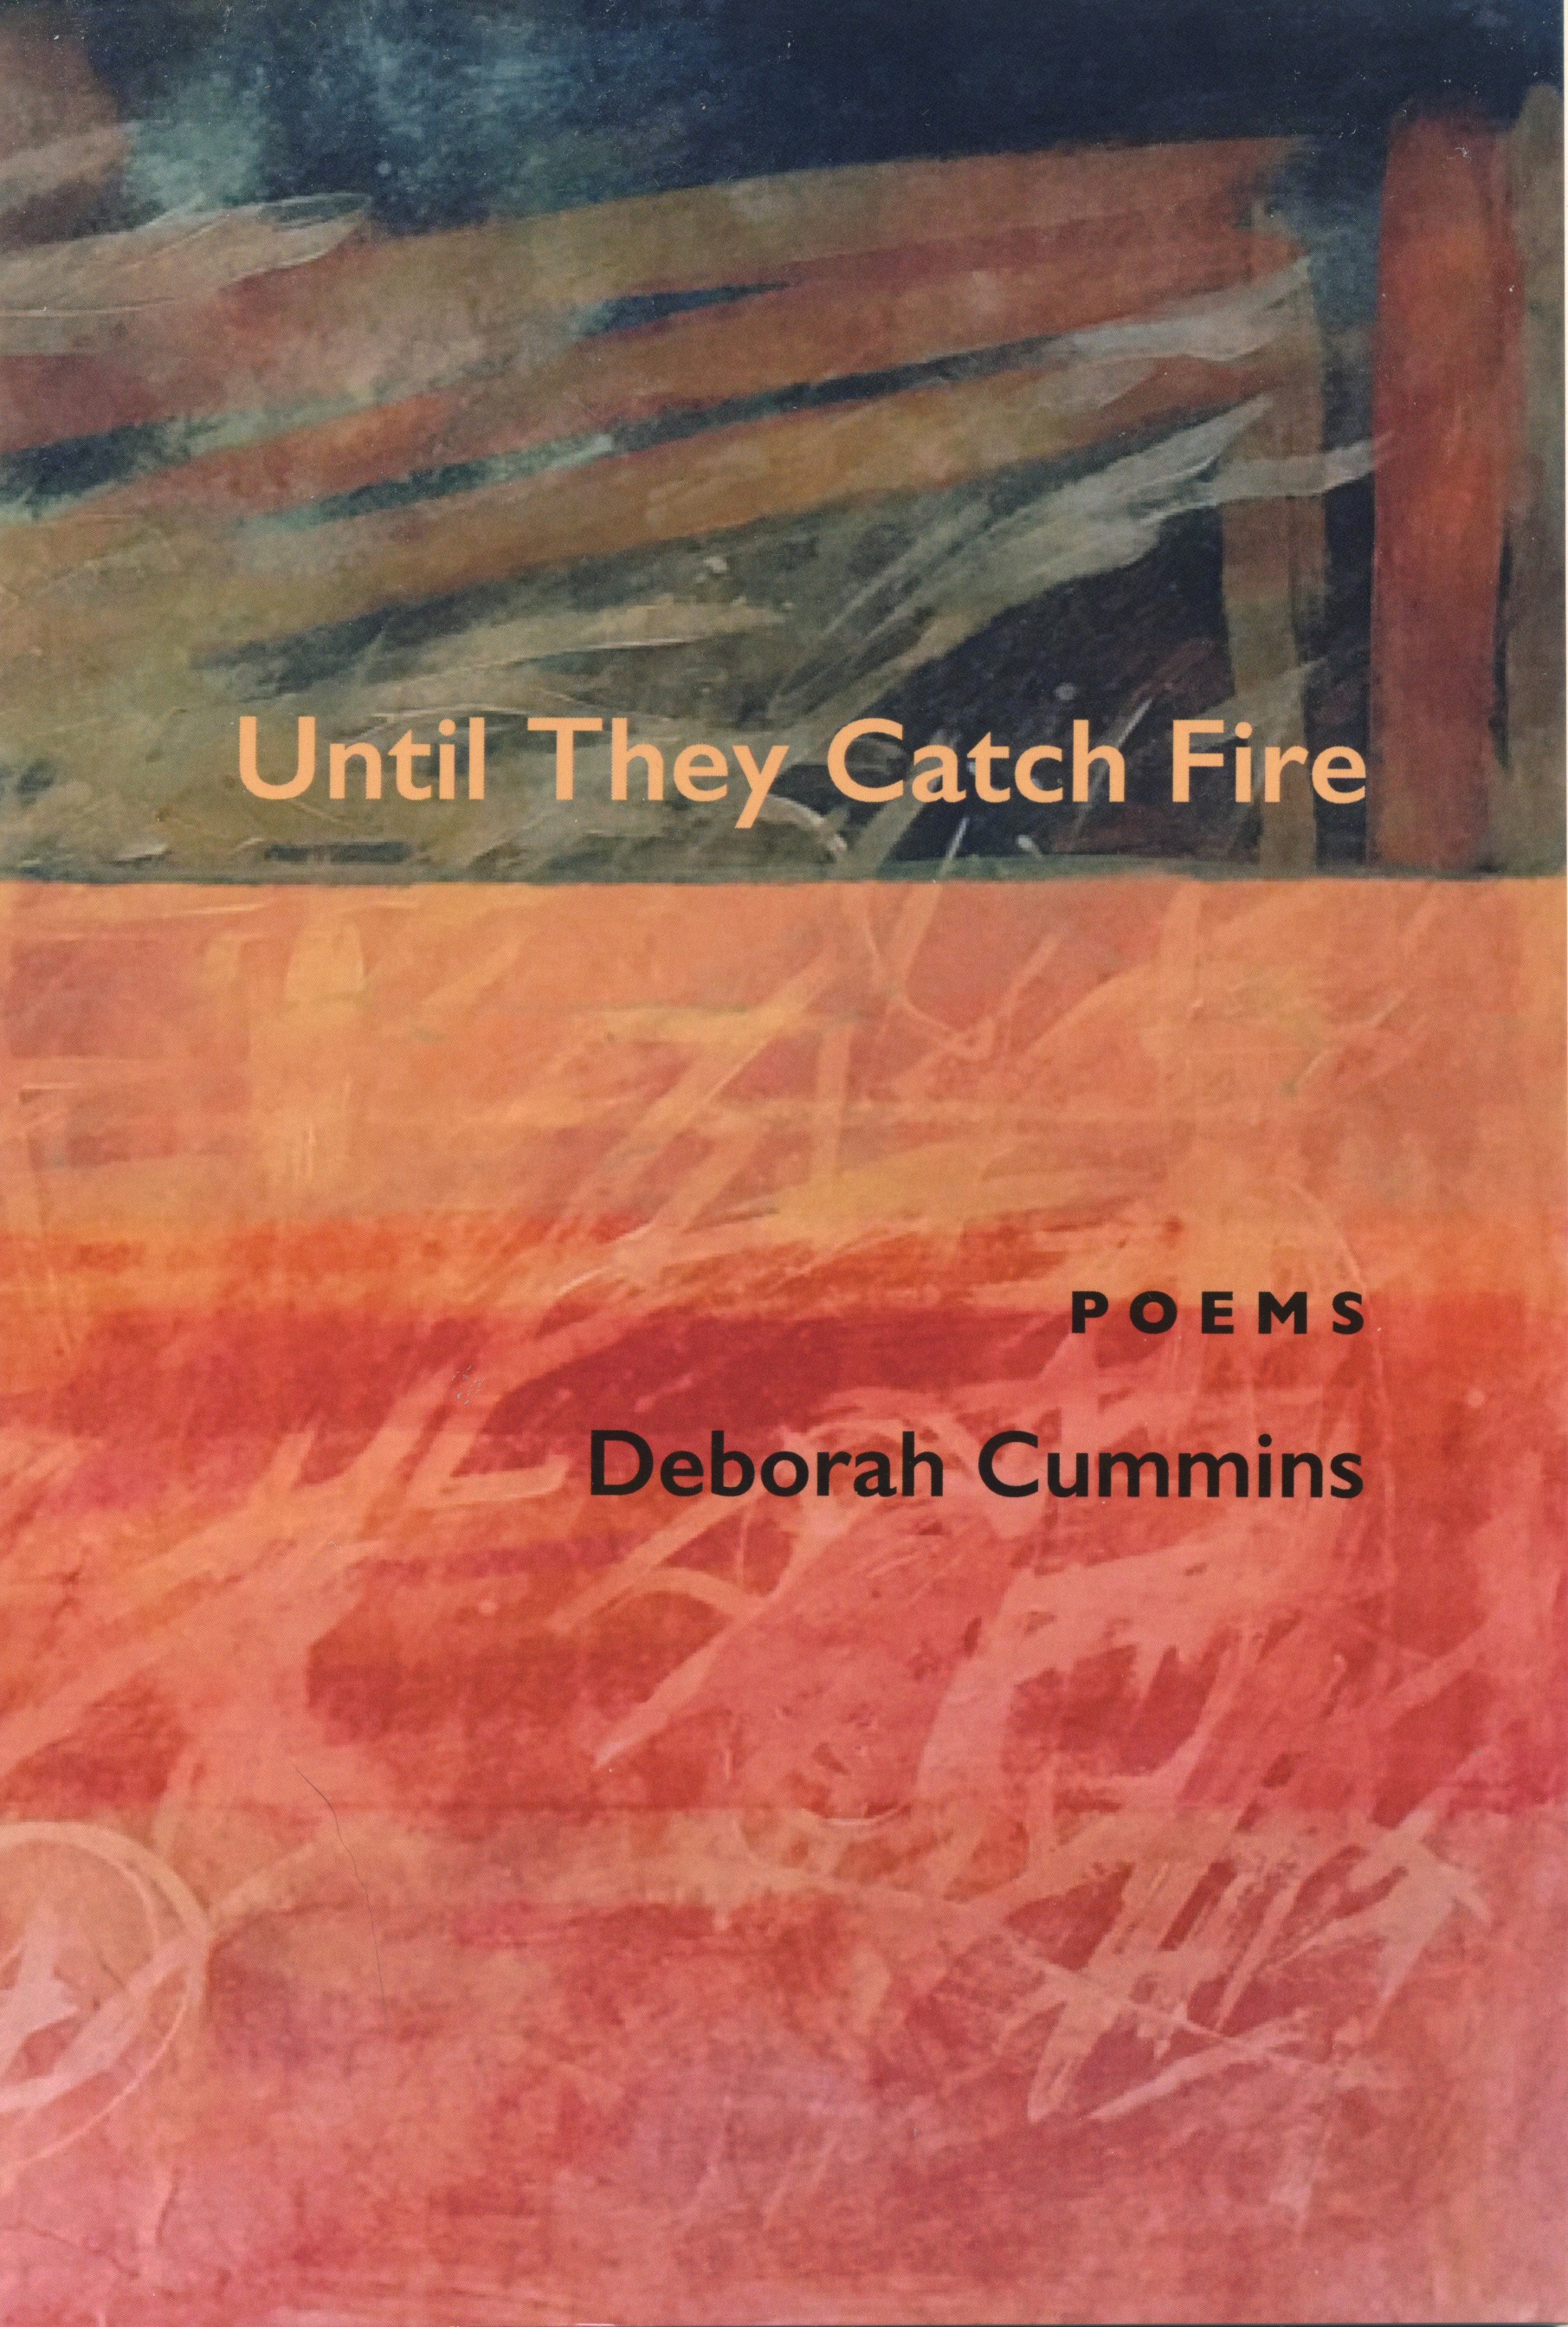 Until They Catch Fire